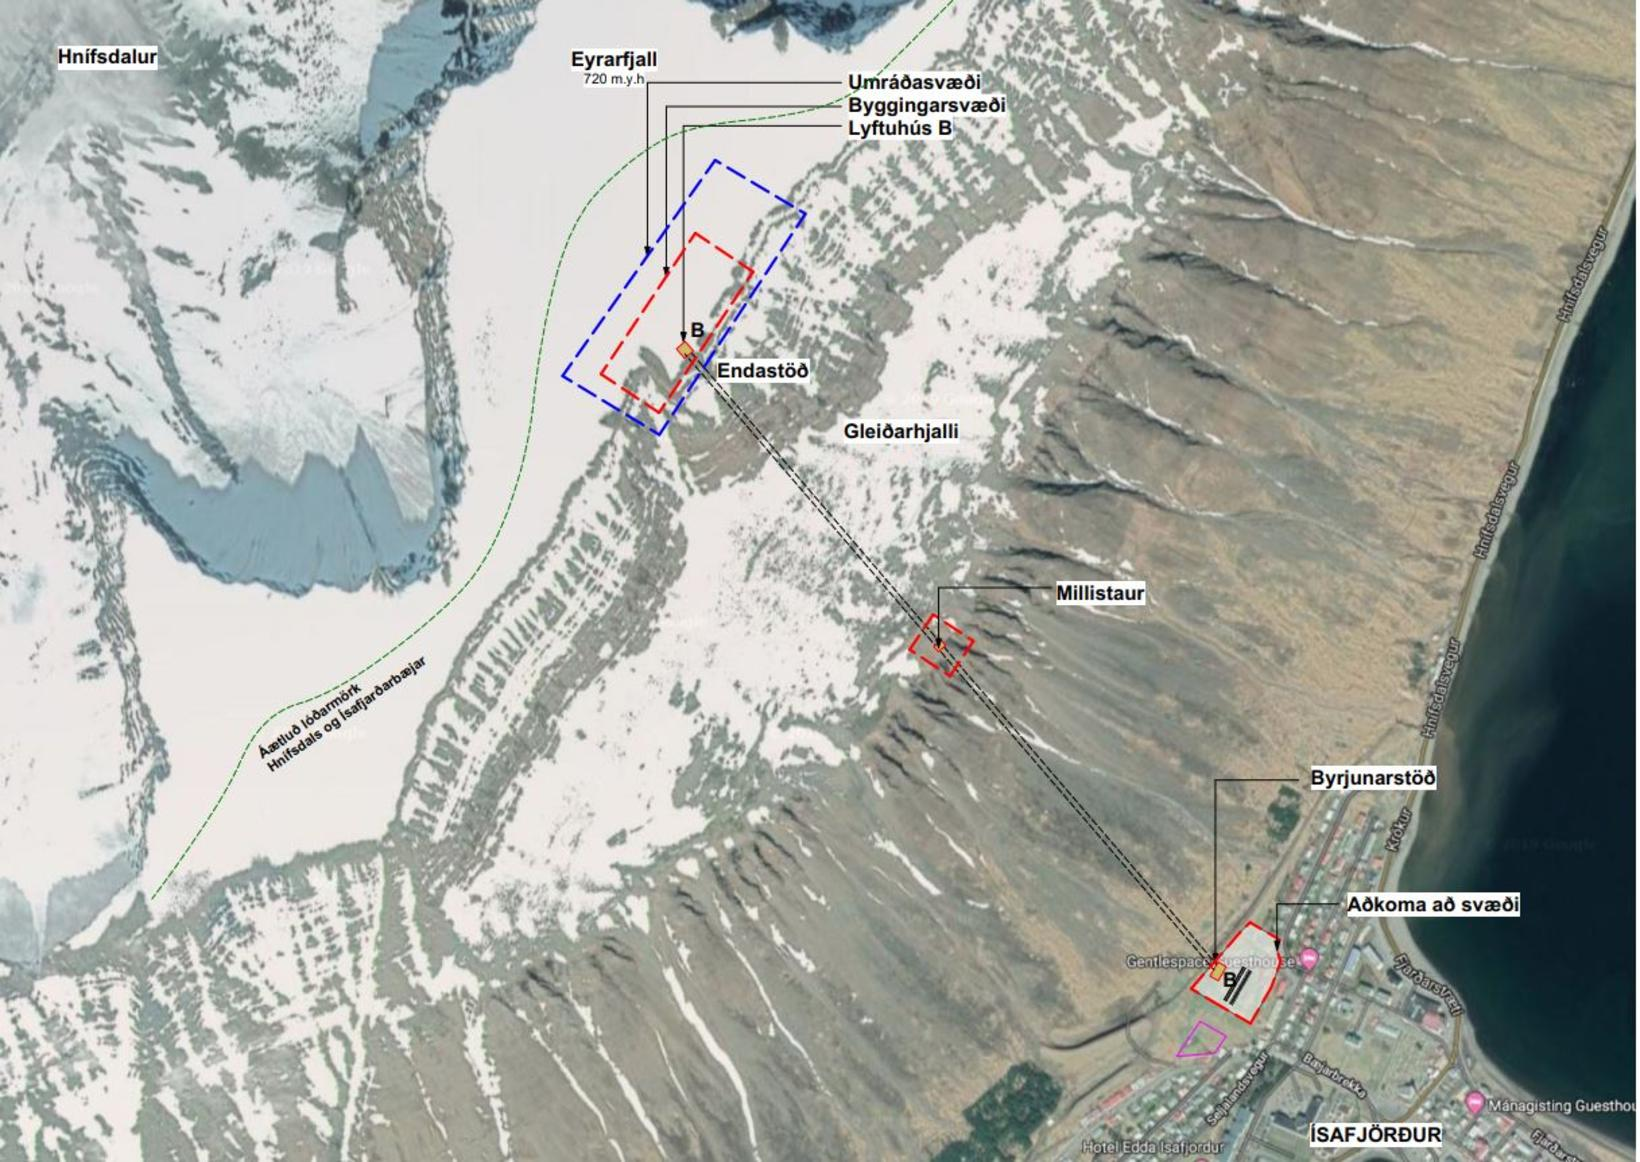 This shows the suggested location of the gondola lift.